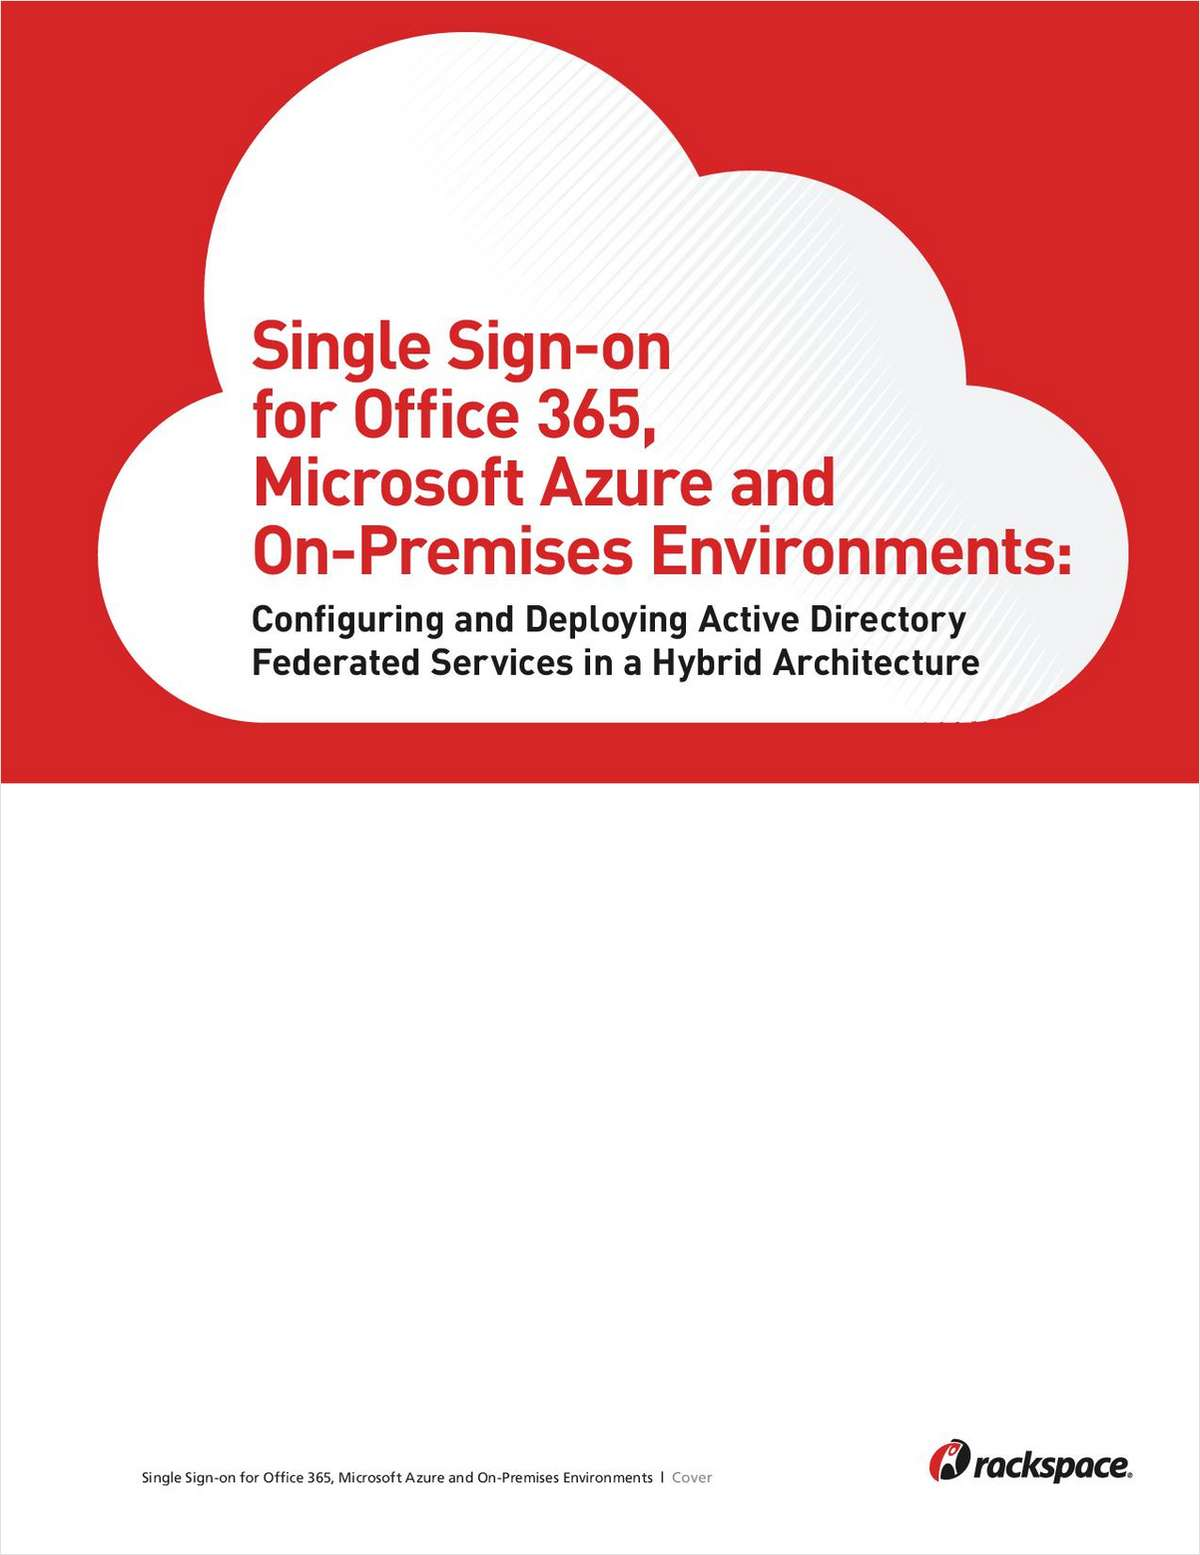 Single Sign-on for Office 365, Microsoft Azure and On-Premises Environments